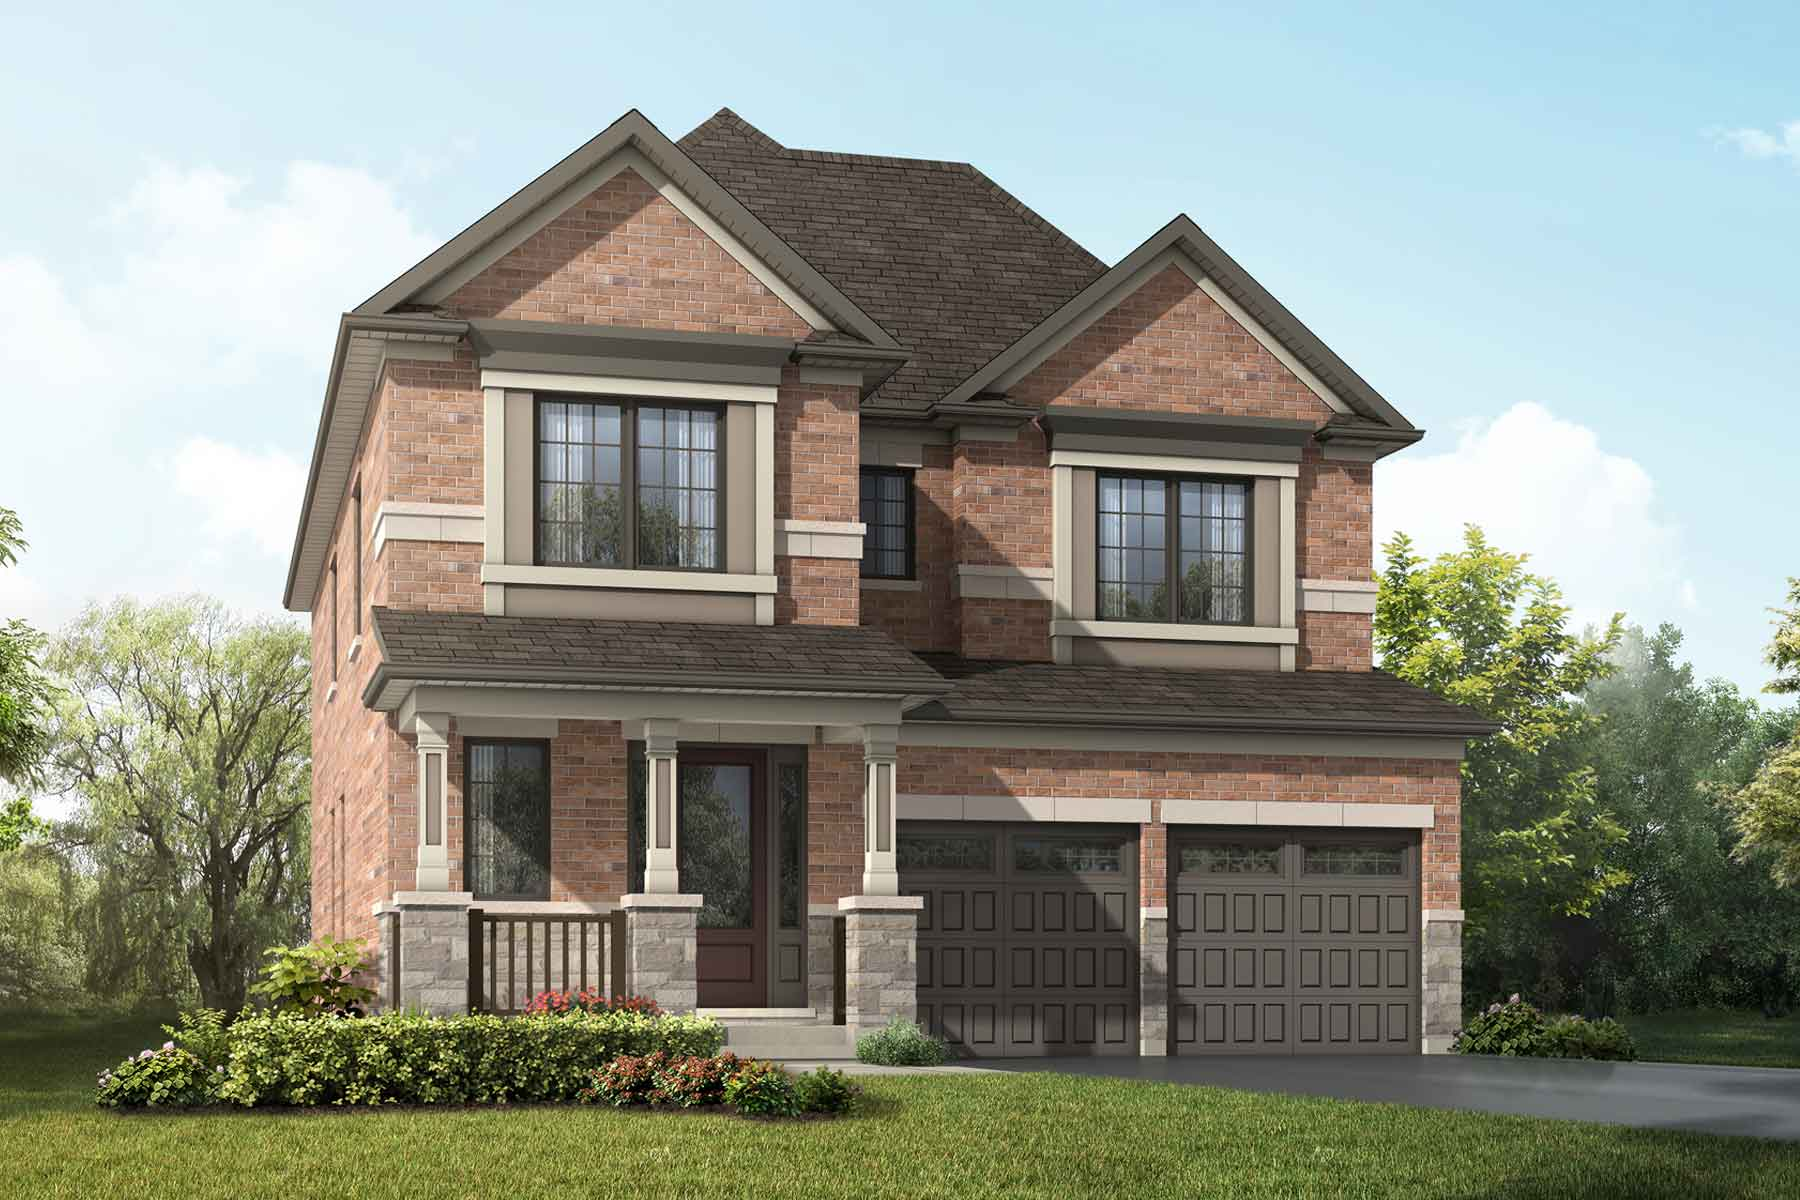 Lilac Plan traditional_springwater_lilac at Springwater in Markham Ontario by Mattamy Homes